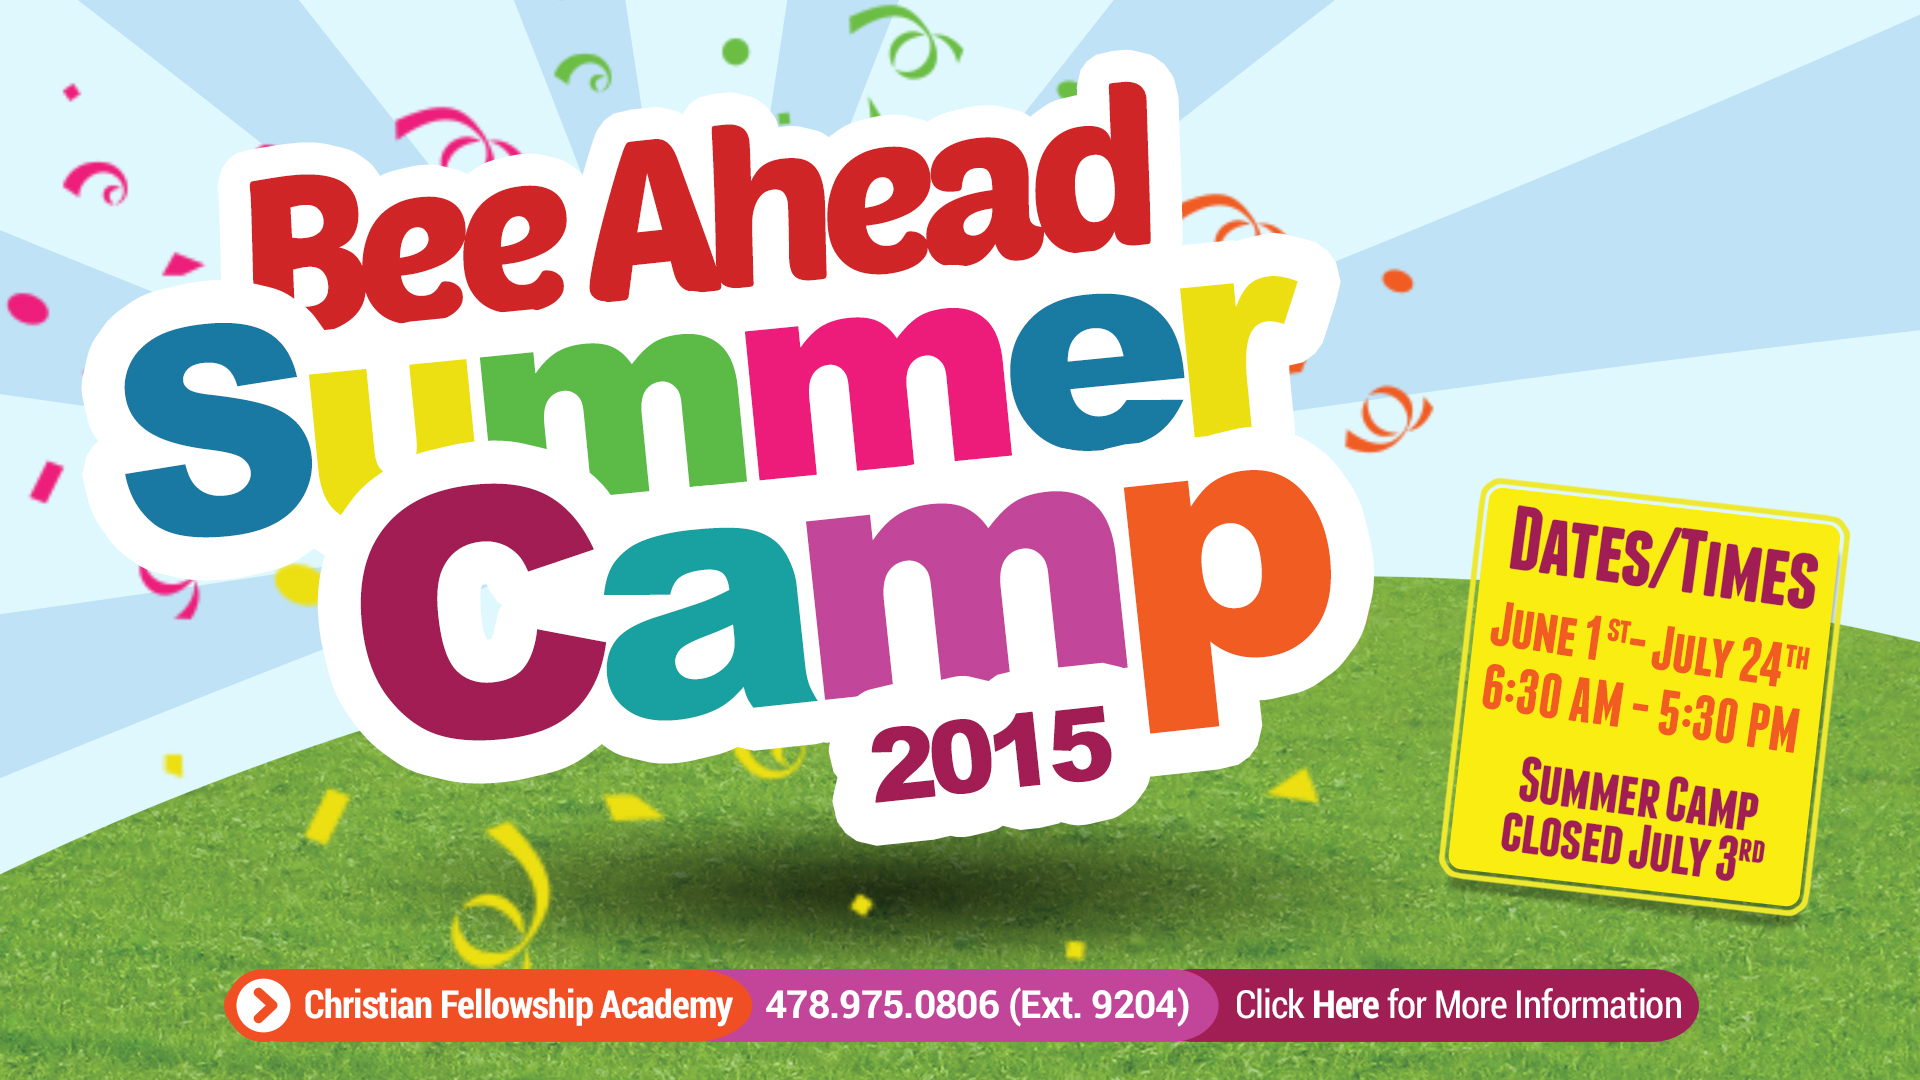 CFA_2015_BeeAheadSummerCamp_Screens_r2